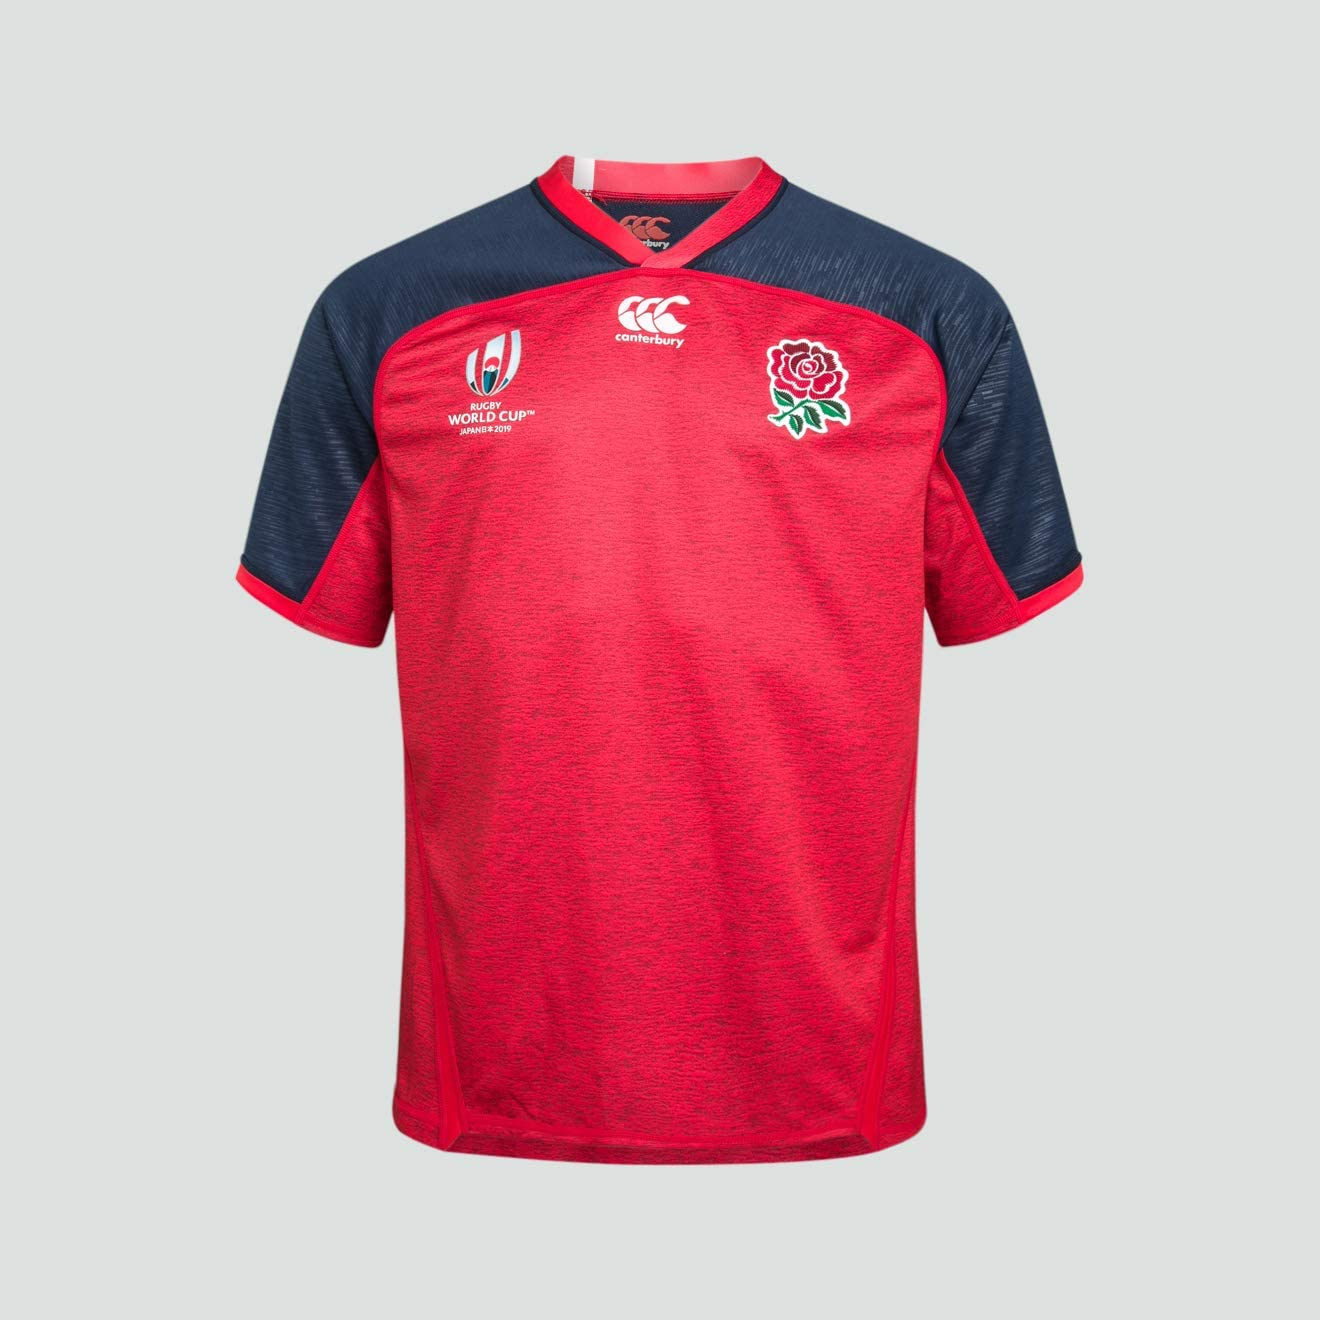 Canterbury of New Zealand Kids England Rugby World Cup 2019 Vapodri Alternate Long Sleeve Jersey, Union Red Marl, 12: Amazon.es: Ropa y accesorios